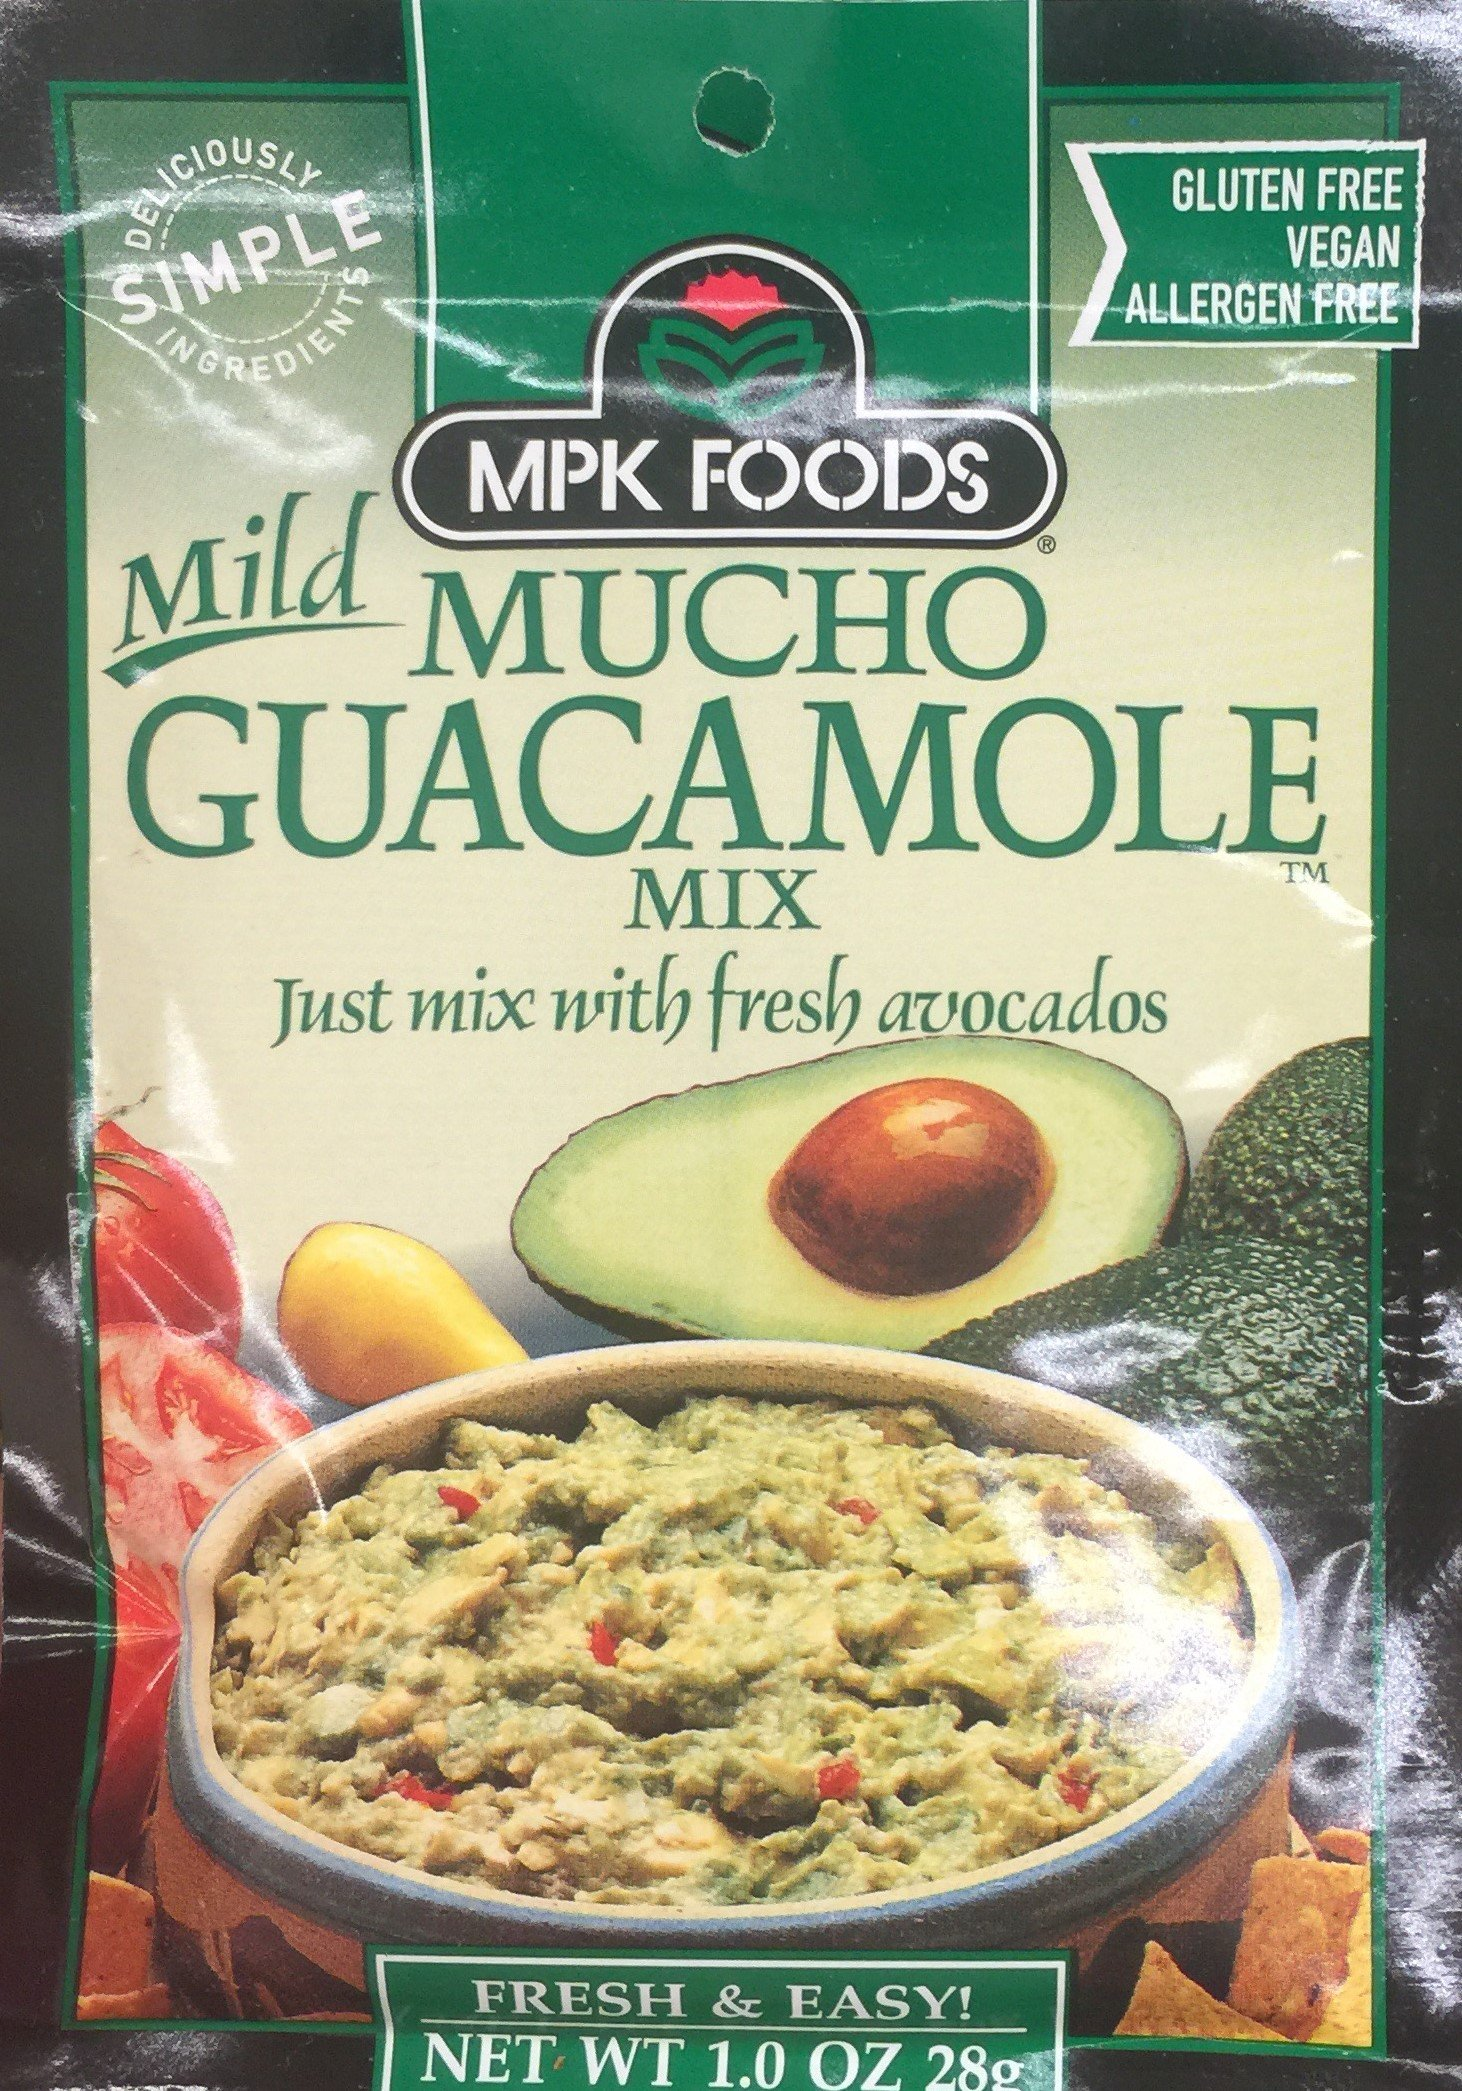 1oz MPK Foods Mucho Guacamole Mix, Mild (Pack of 2)